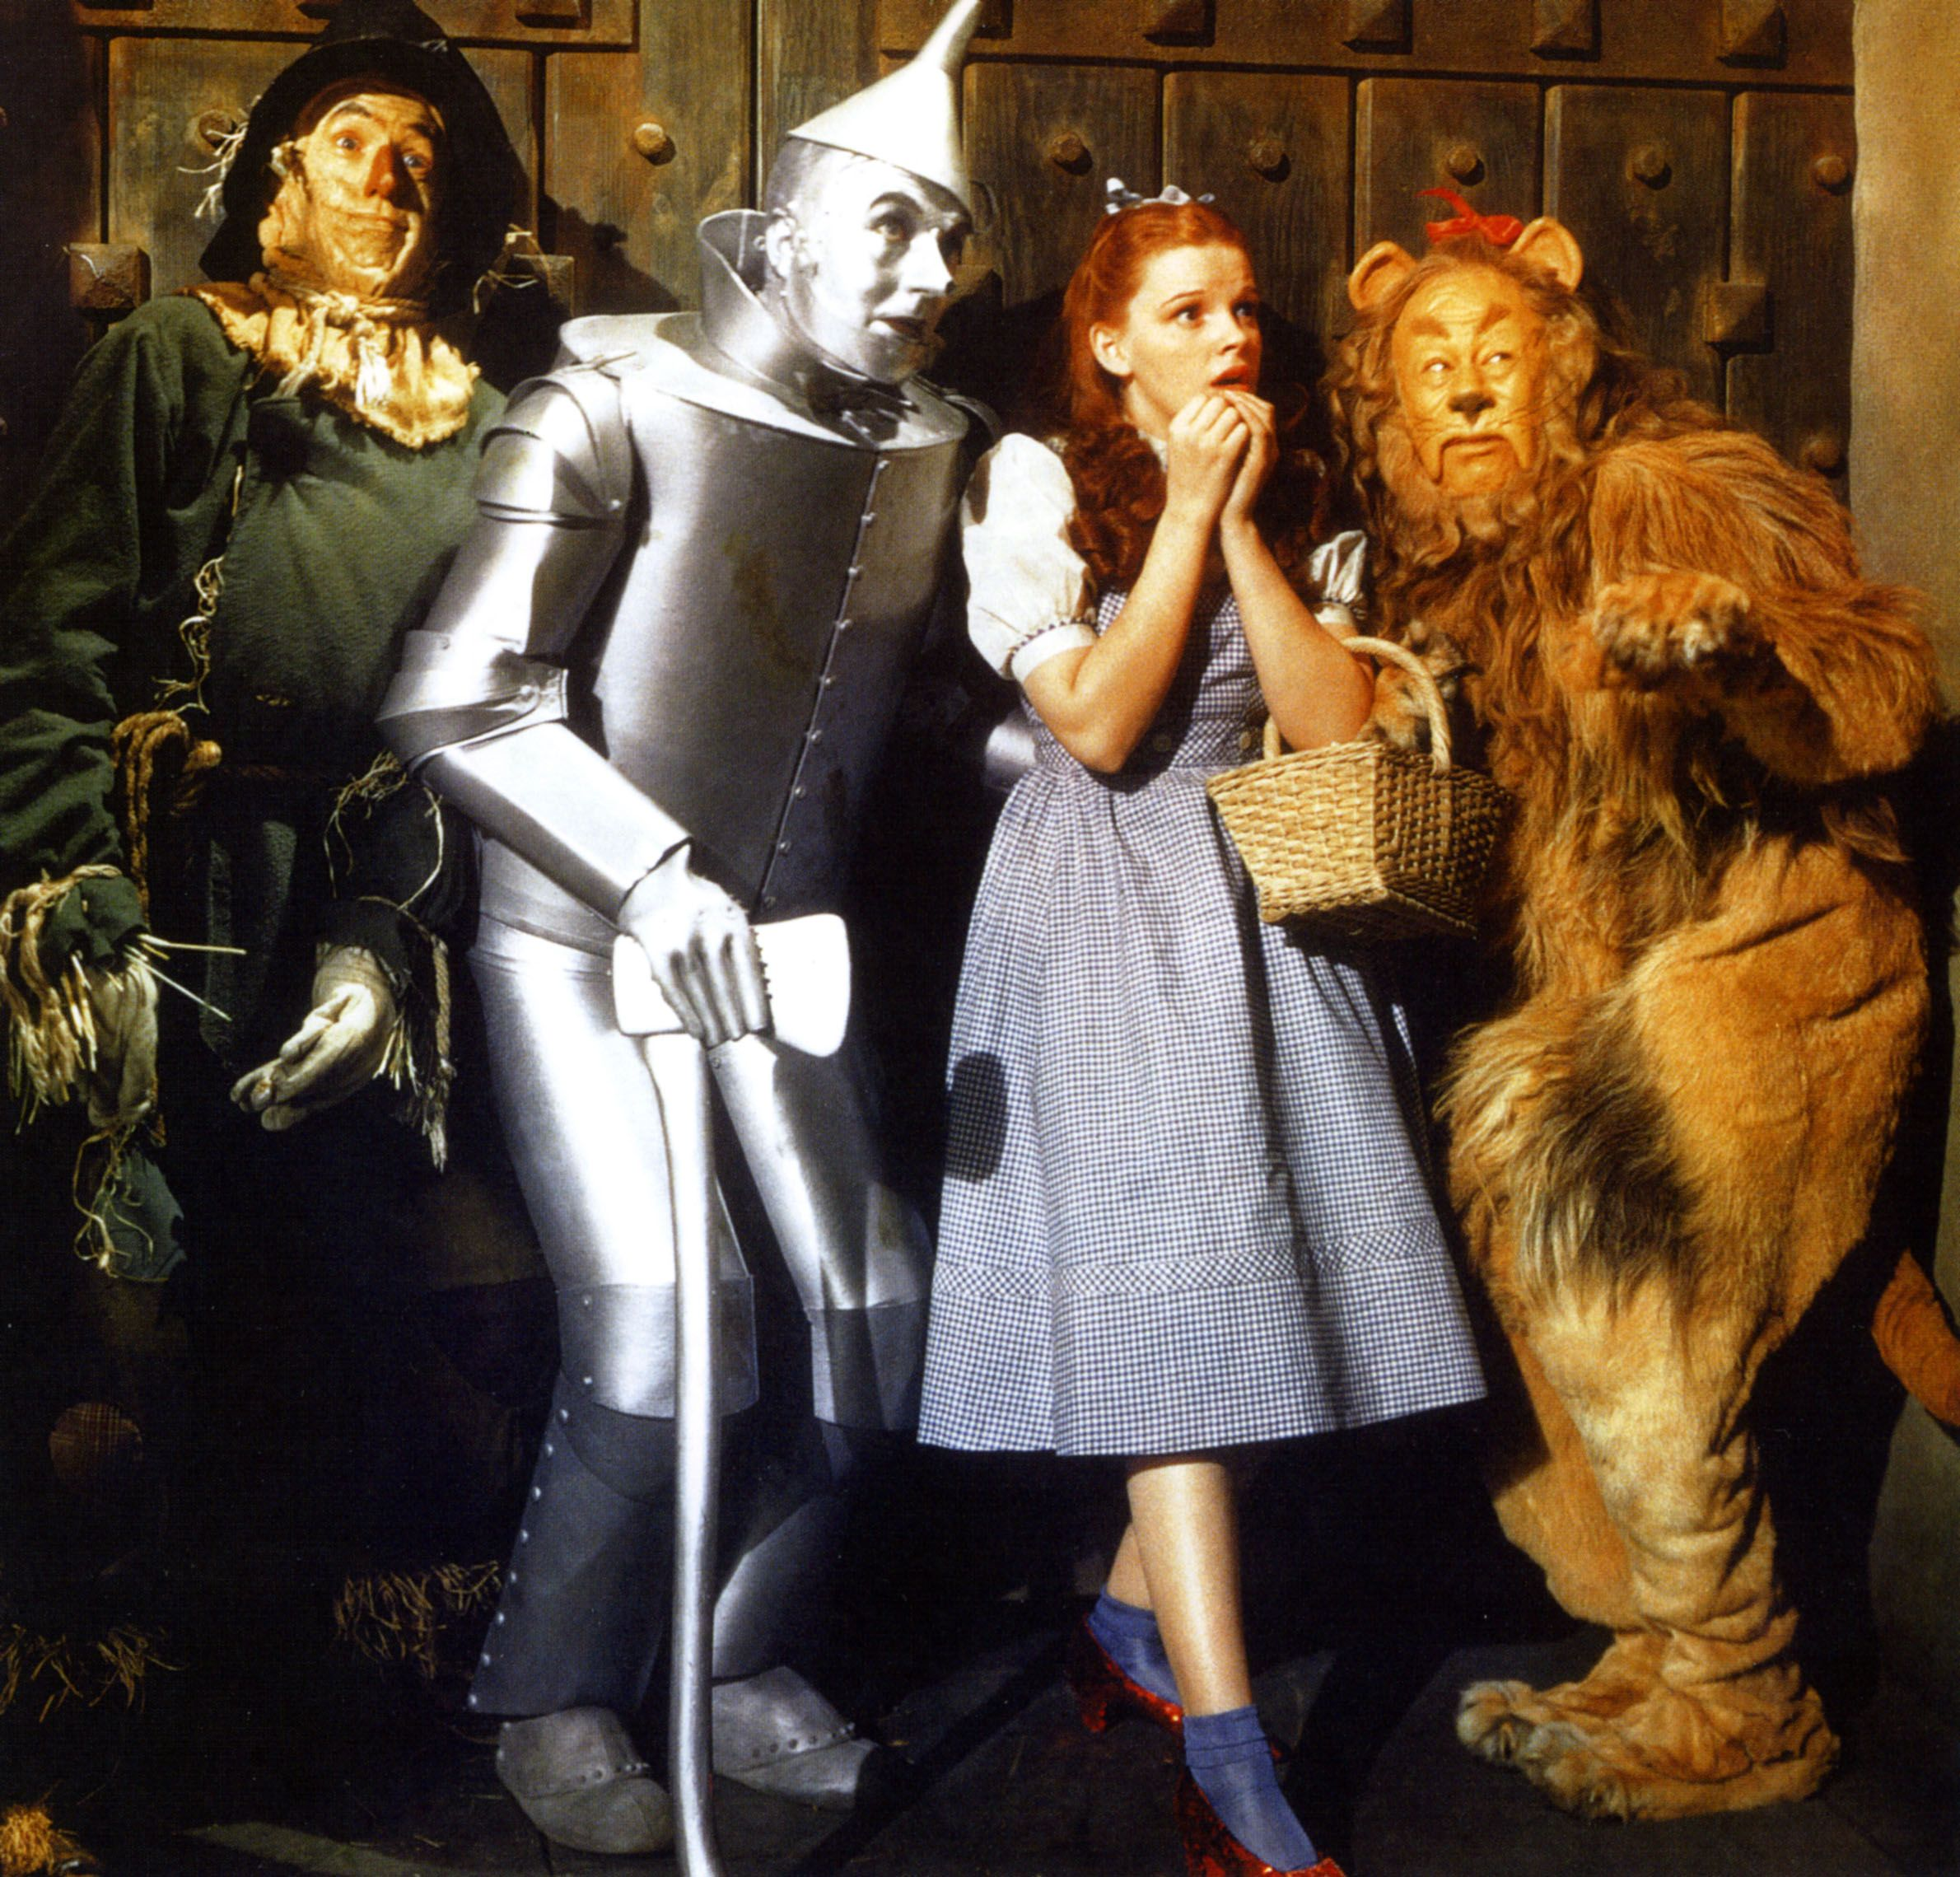 08_25_Wizard_of_oz_01